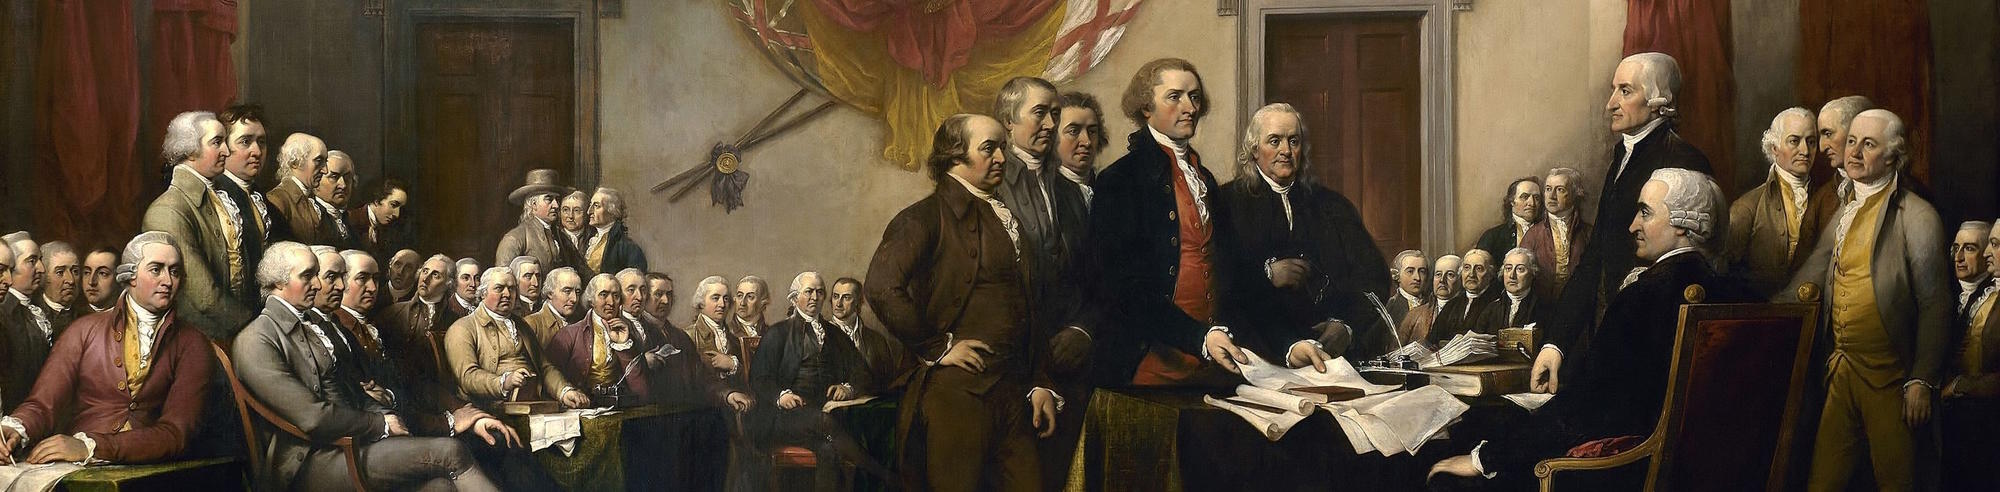 John Trumbull, Declaration of Independence (Public Domain)